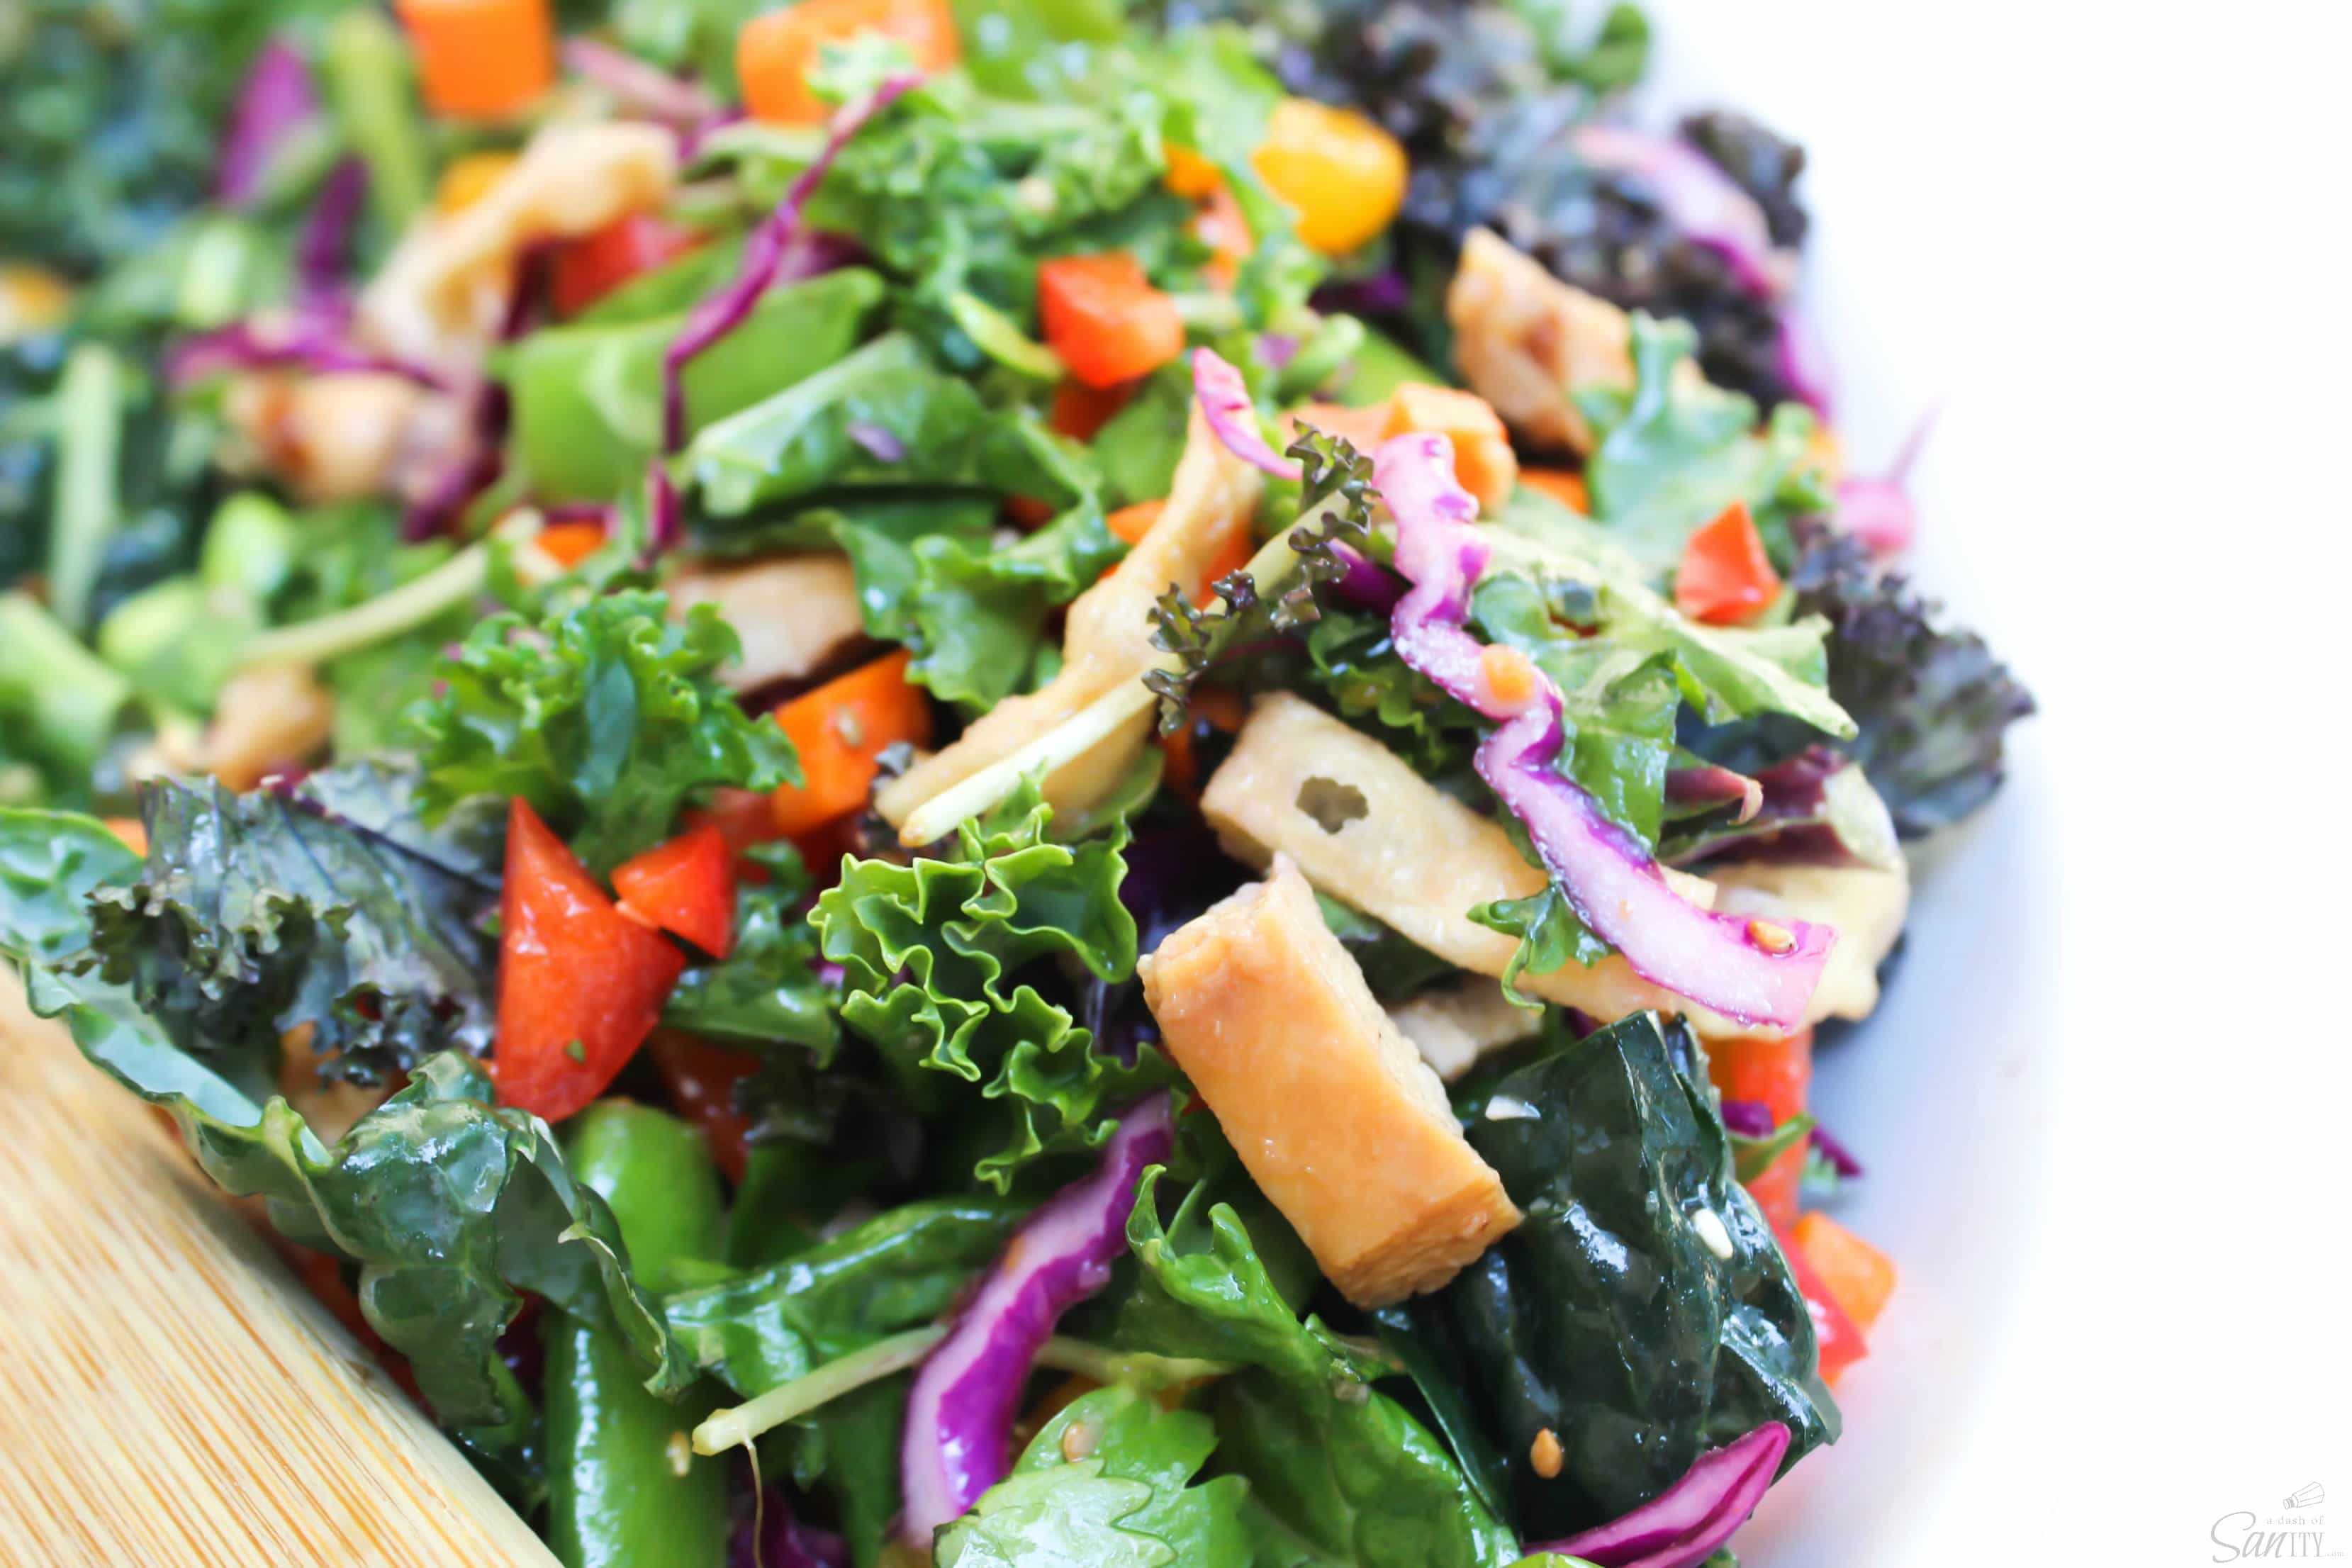 Asian Kale Salad with Sesame Ginger Vinaigrette is packed with bright colors and bold flavors with rainbow kale, red cabbage, cilantro, and sunflower greens,